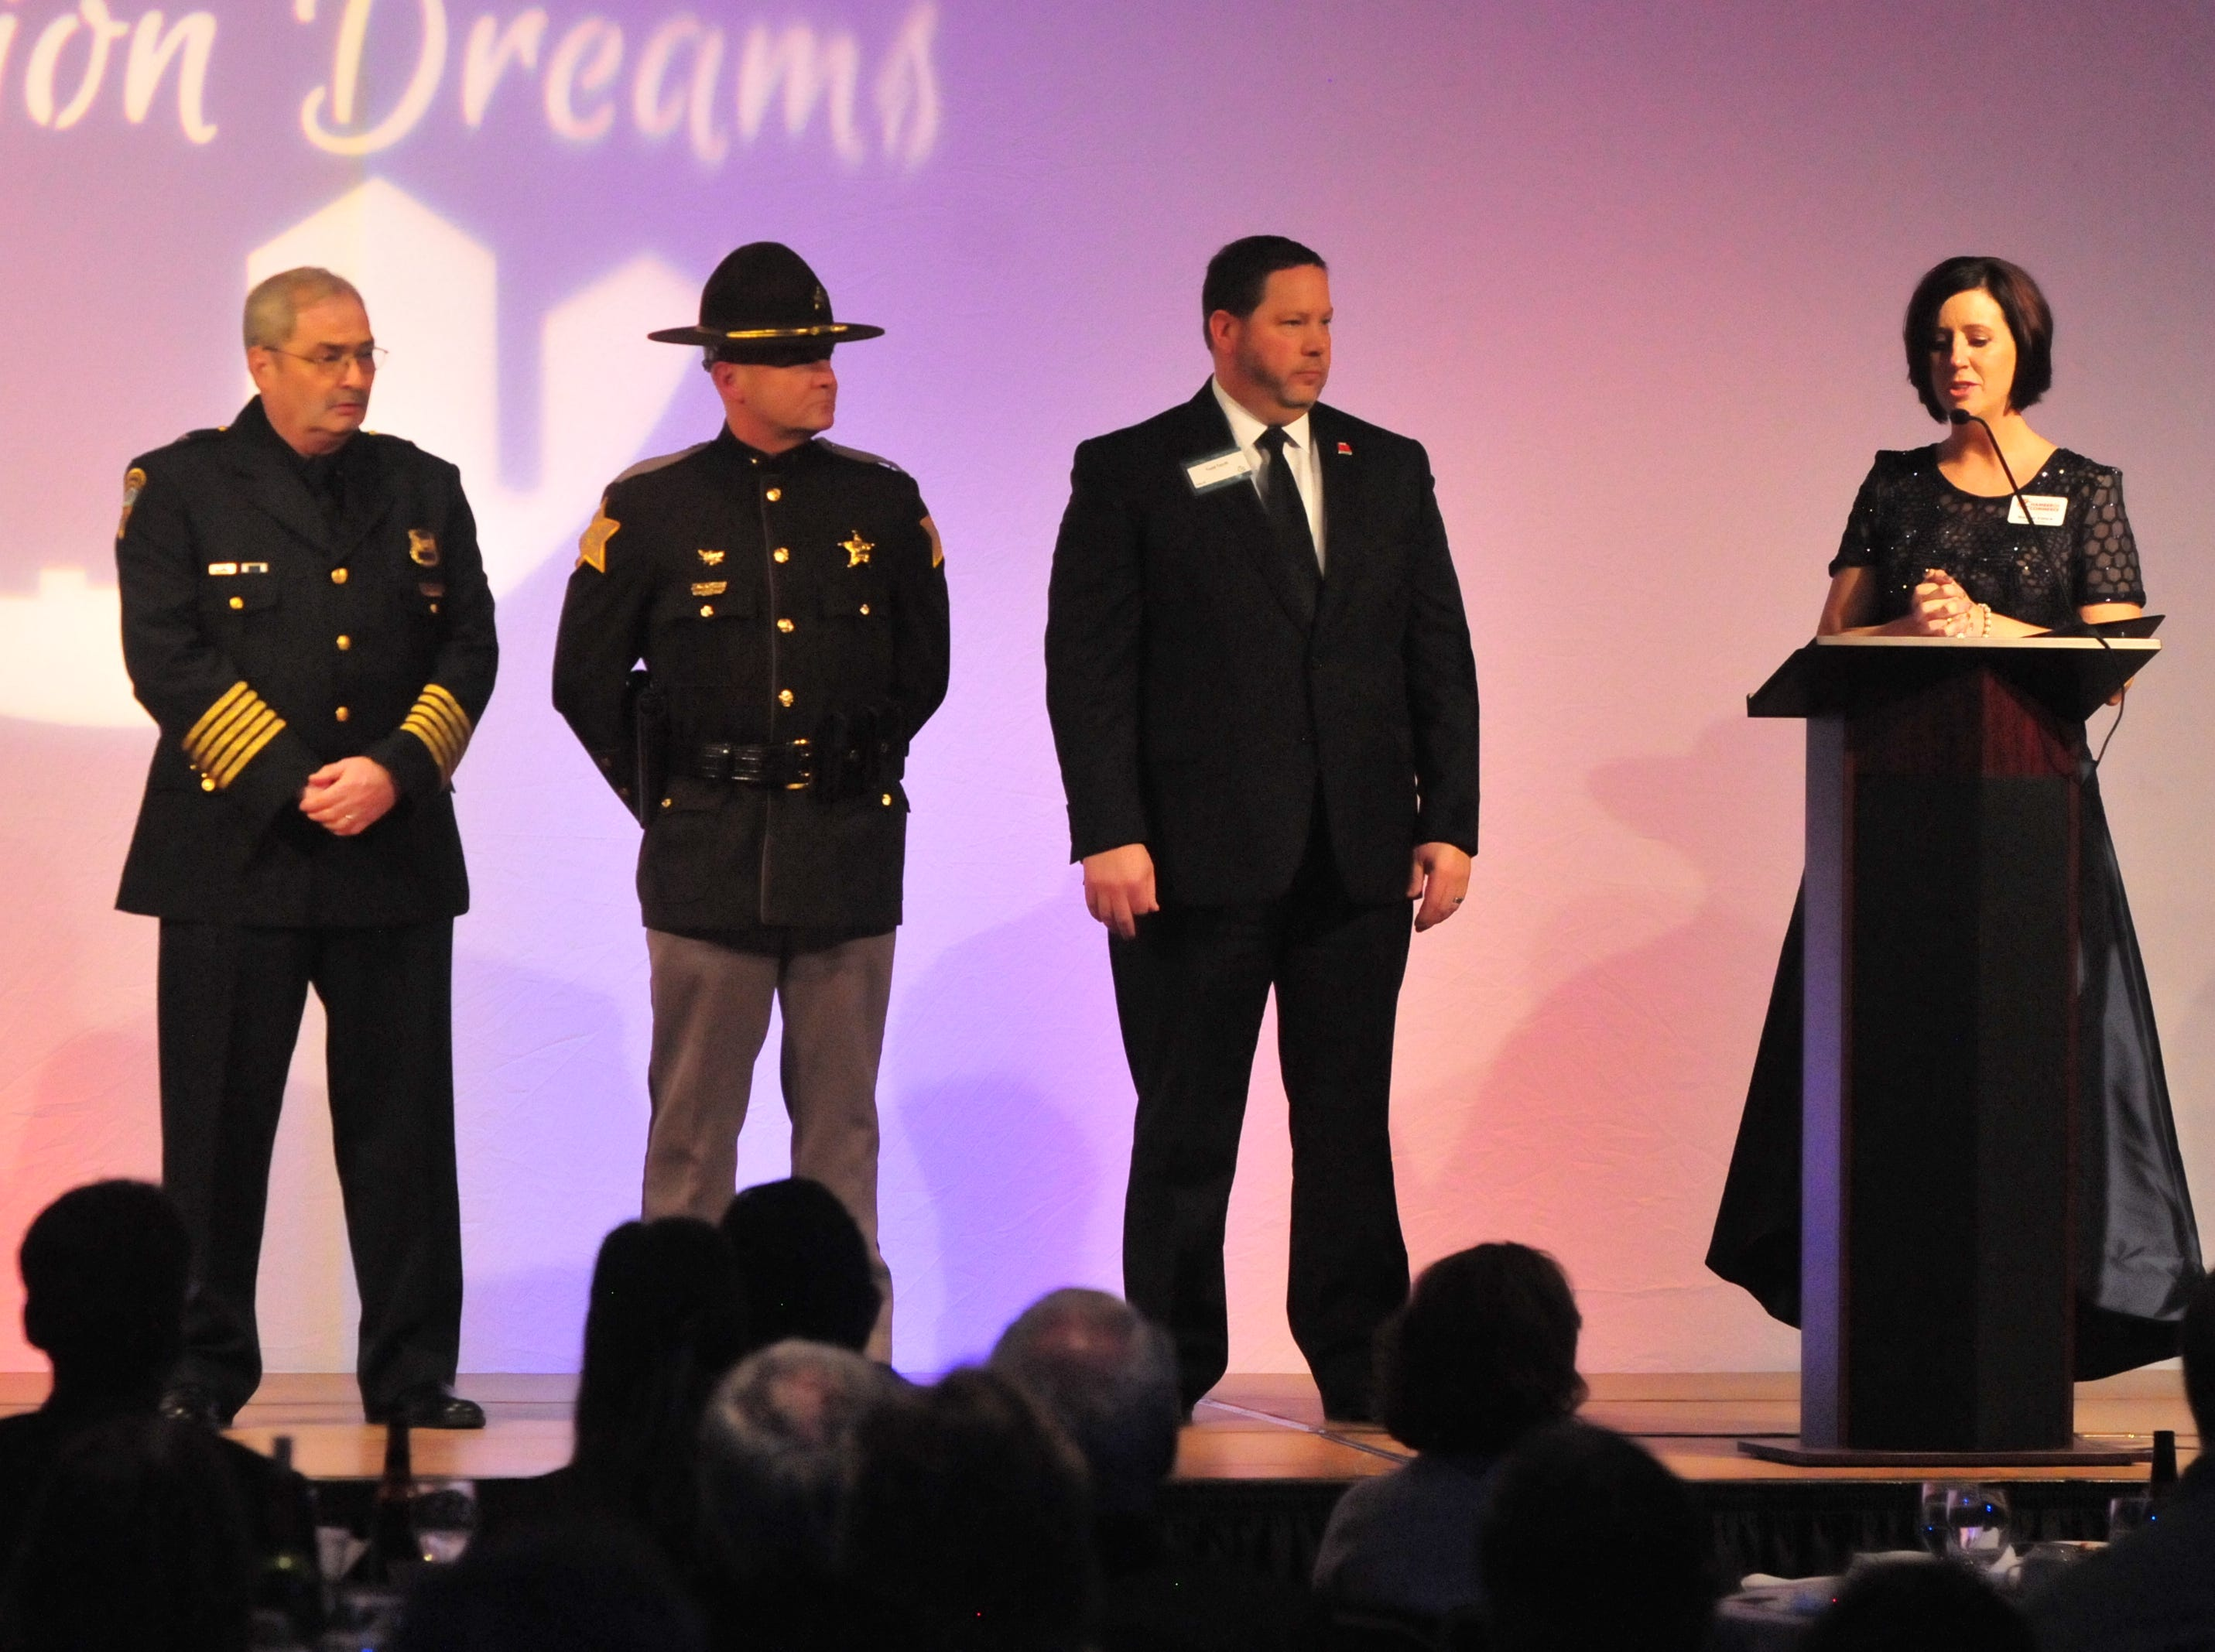 Melissa Vance recognizes Richmond Police Department Chief Jim Branum (from left), Wayne County Sheriff Randy Retter and Richmond Community Schools Superintendent Todd Terrill while speaking about the Dec. 13 active-shooter incident at Dennis Intermediate School.